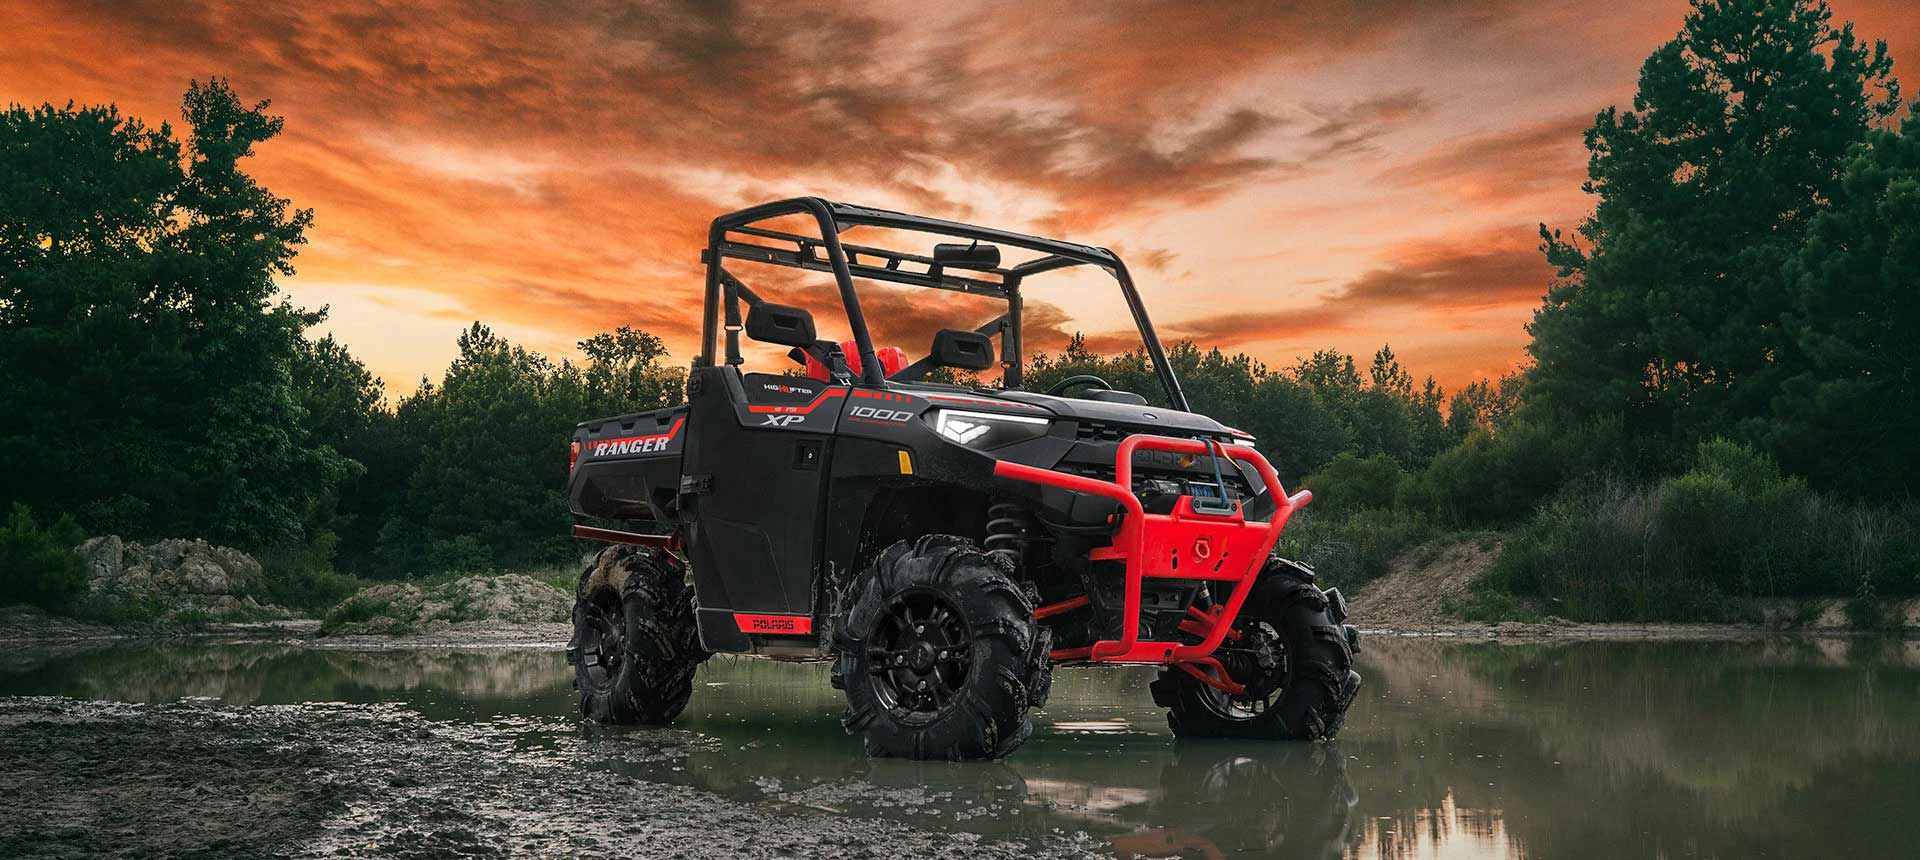 2022 Ranger XP 1000 and Ranger Crew XP 1000 High Lifter editions are on the list.